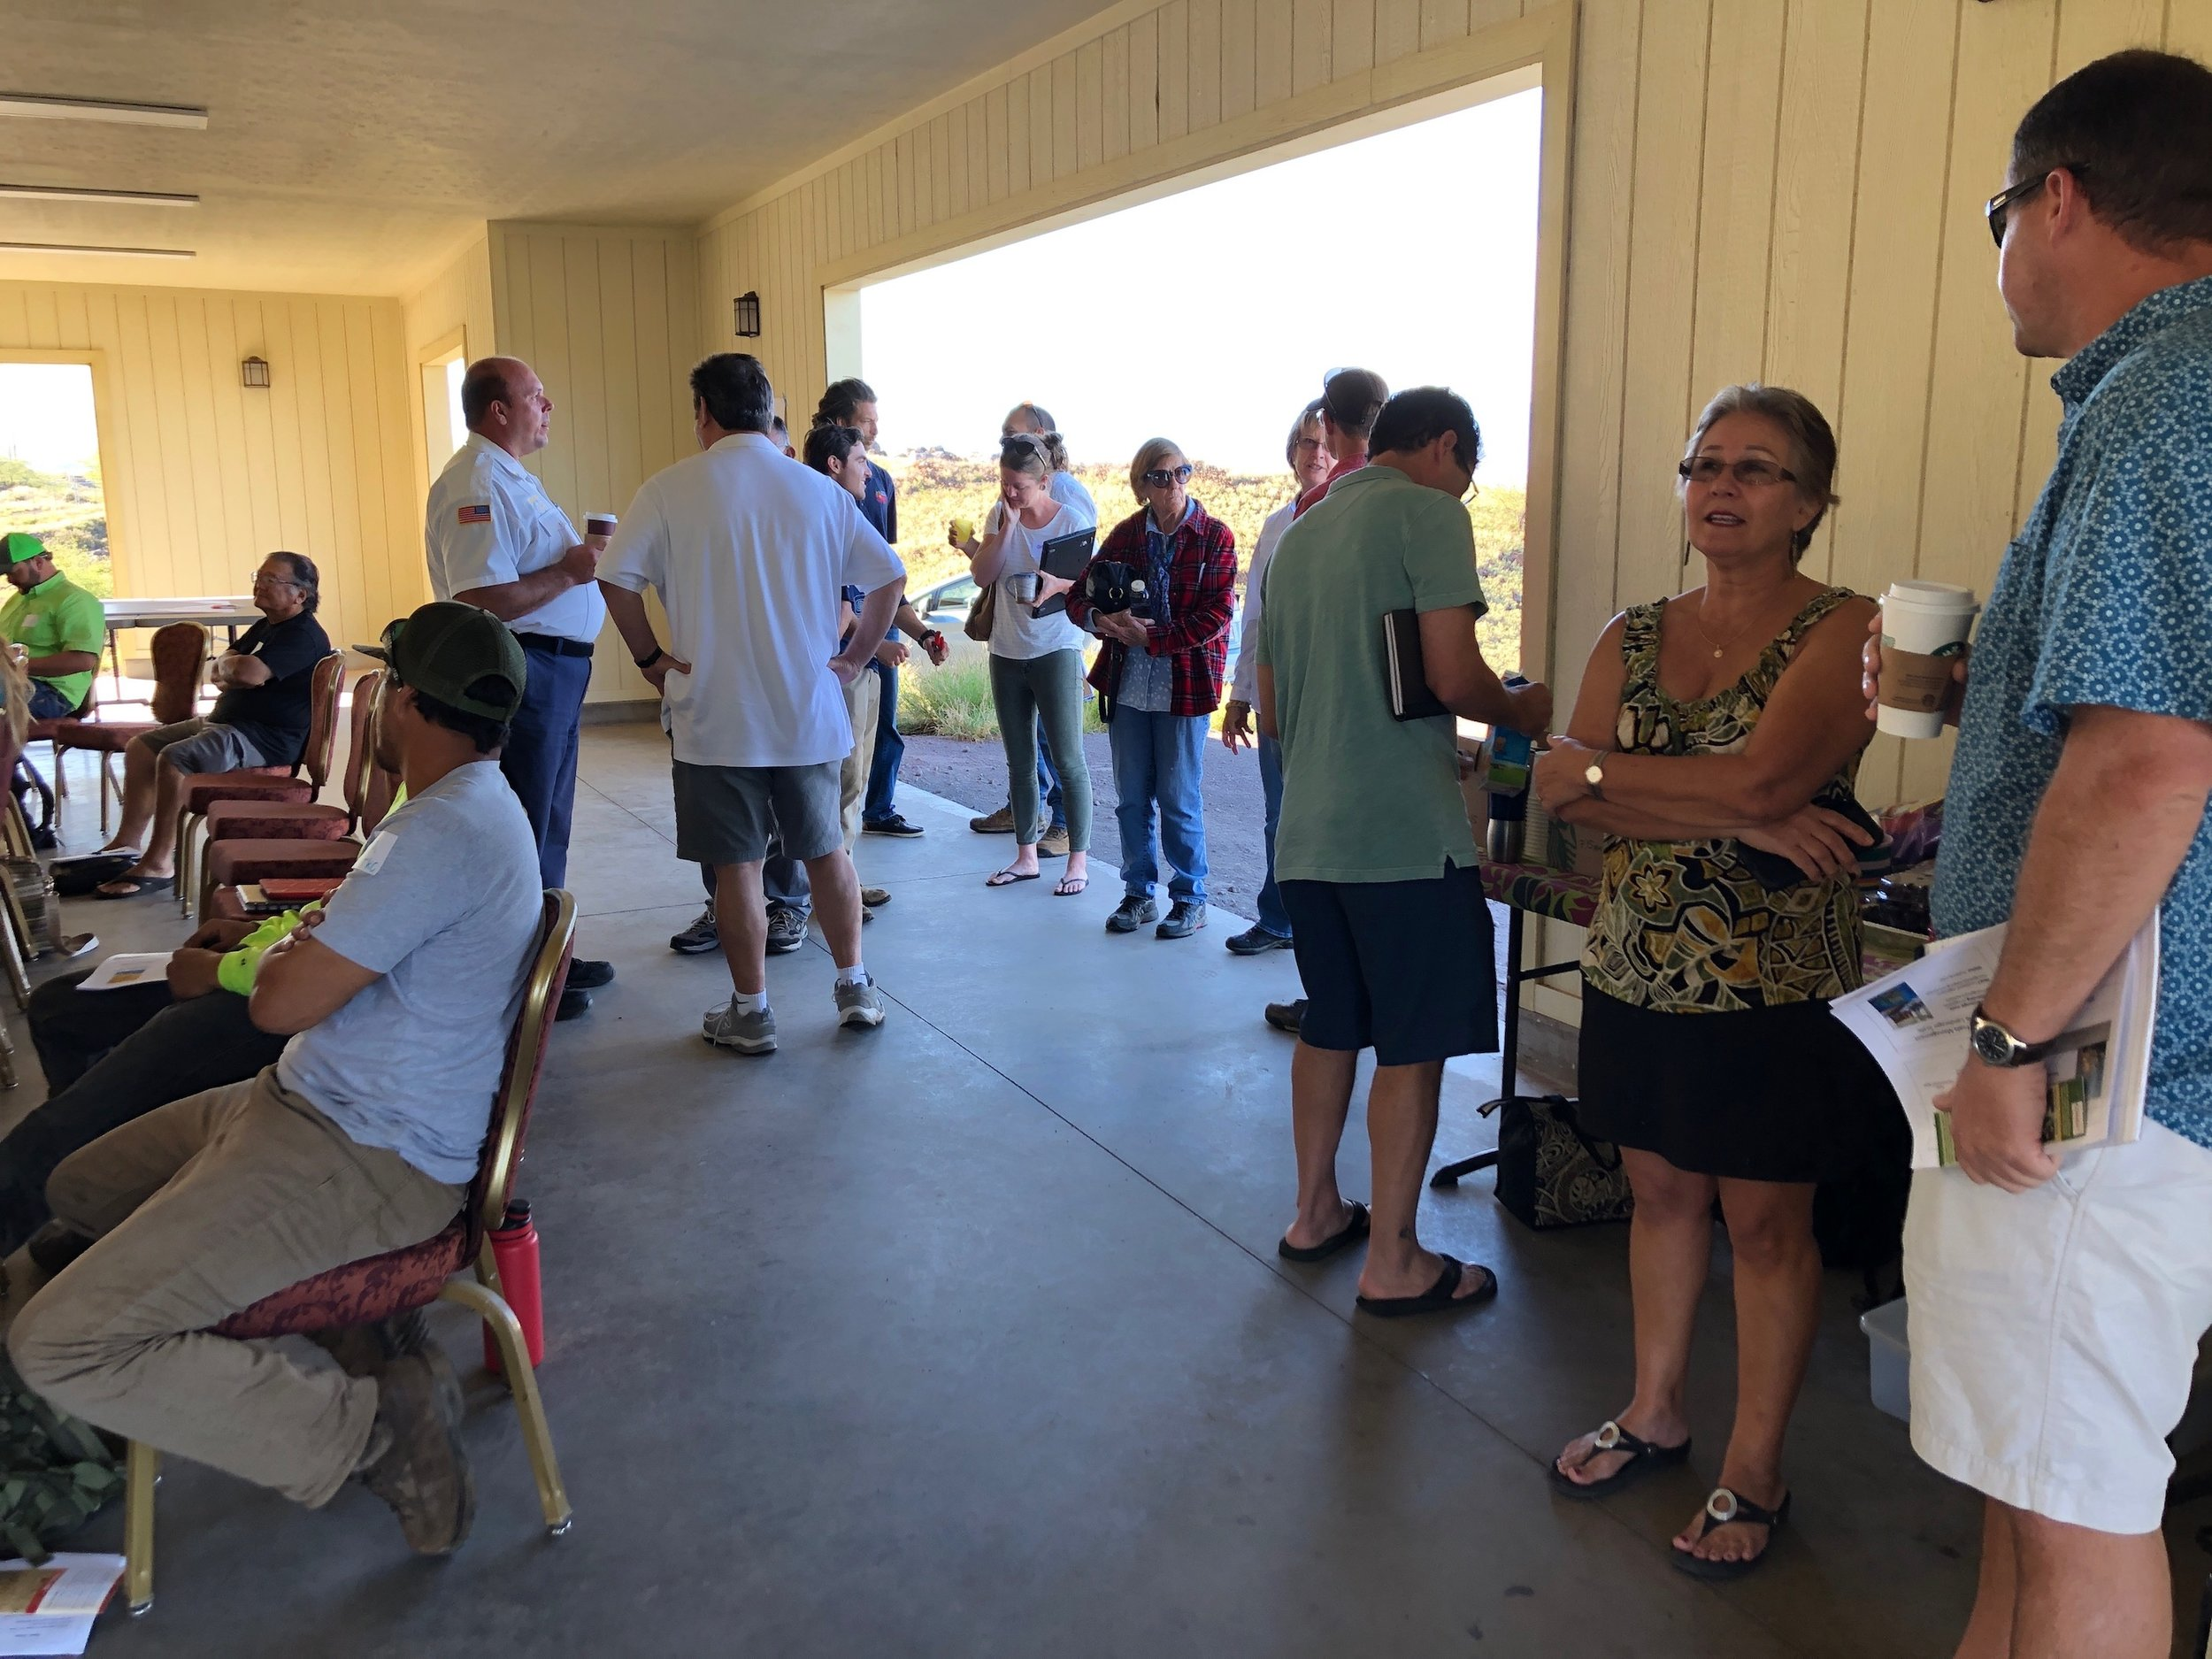 Hawaii Island Kailapa Vegetative Fuels Management Collaborative Action Planning Workshop_2_26_2019_7.jpg